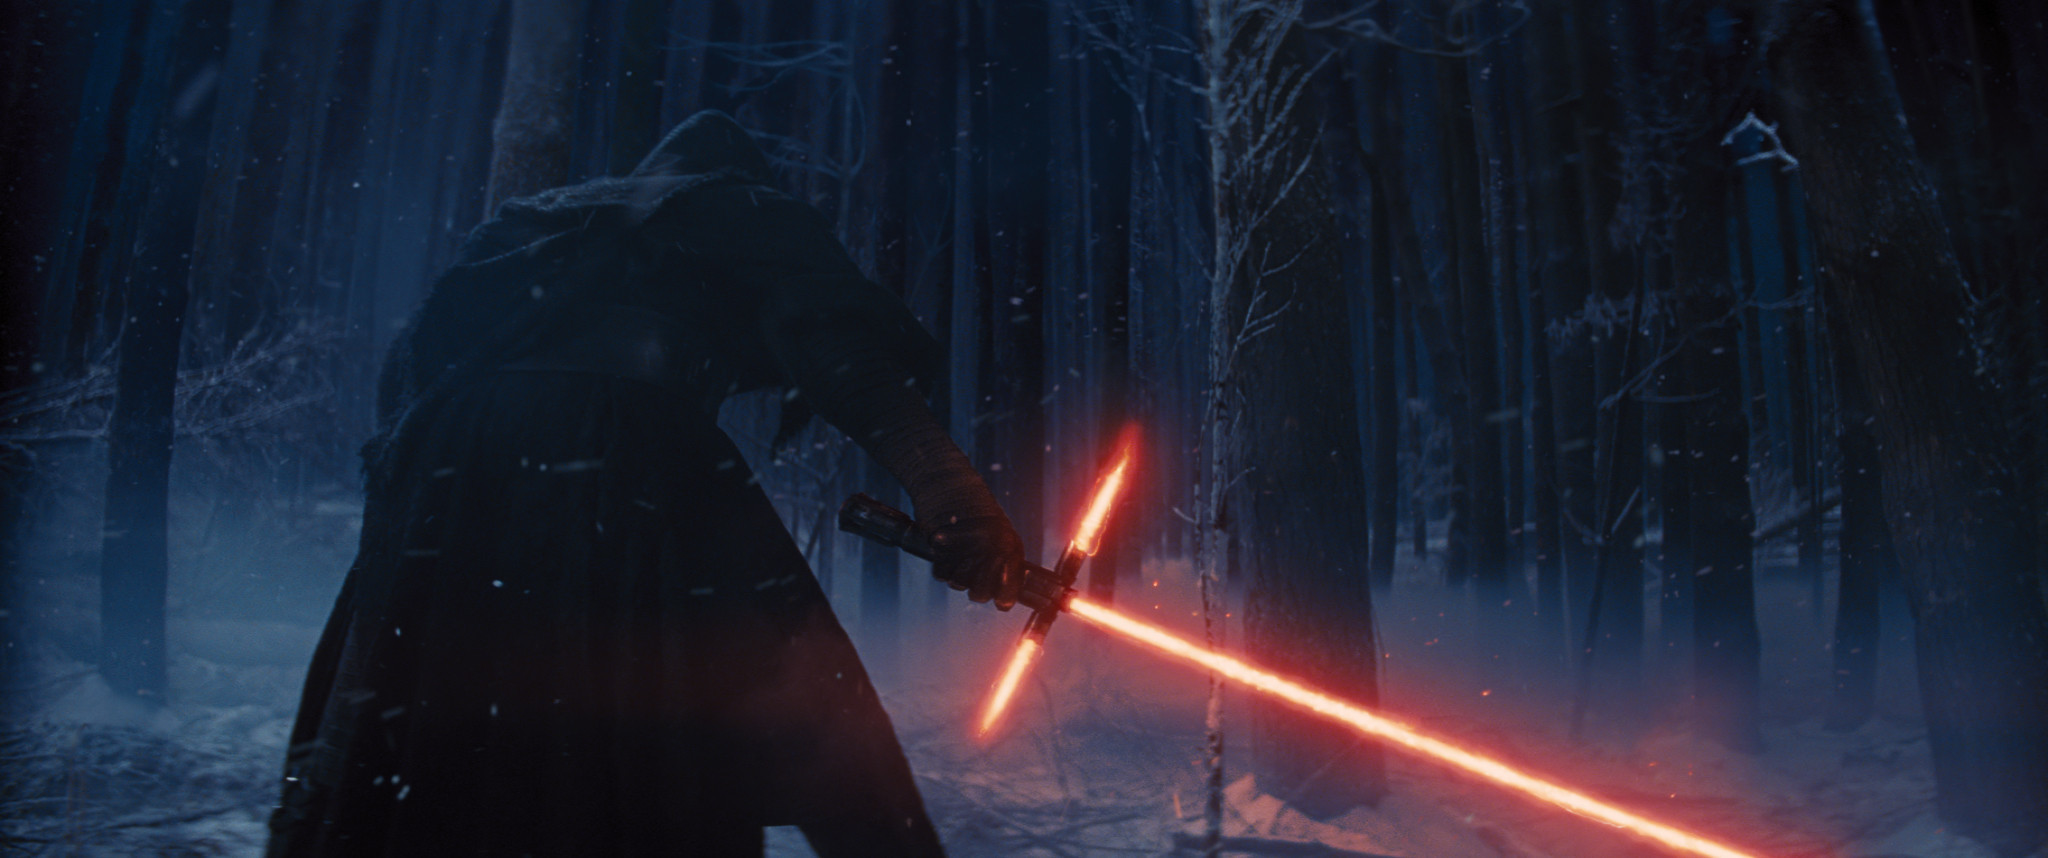 'Star Wars: The Force Awakens' trailer teases new faces and nostalgia